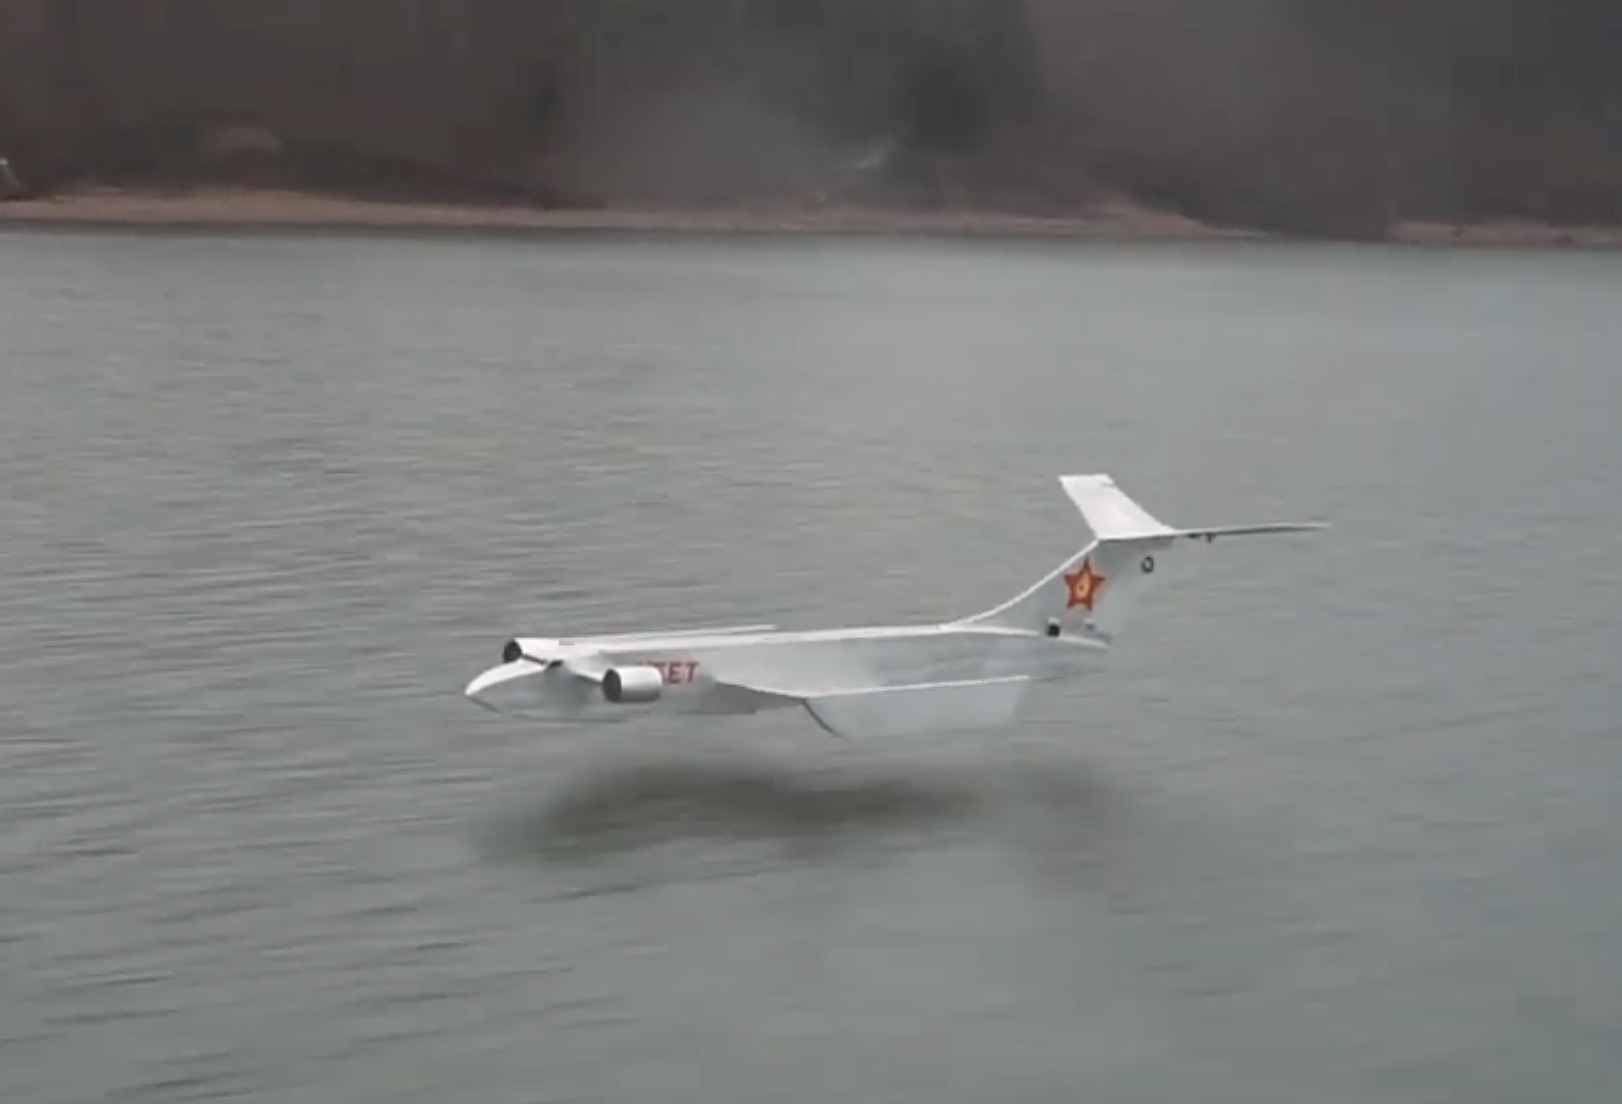 Homegrown Sea Monster: Check Out This Fully Functional Remote-Controlled Ekranoplan!